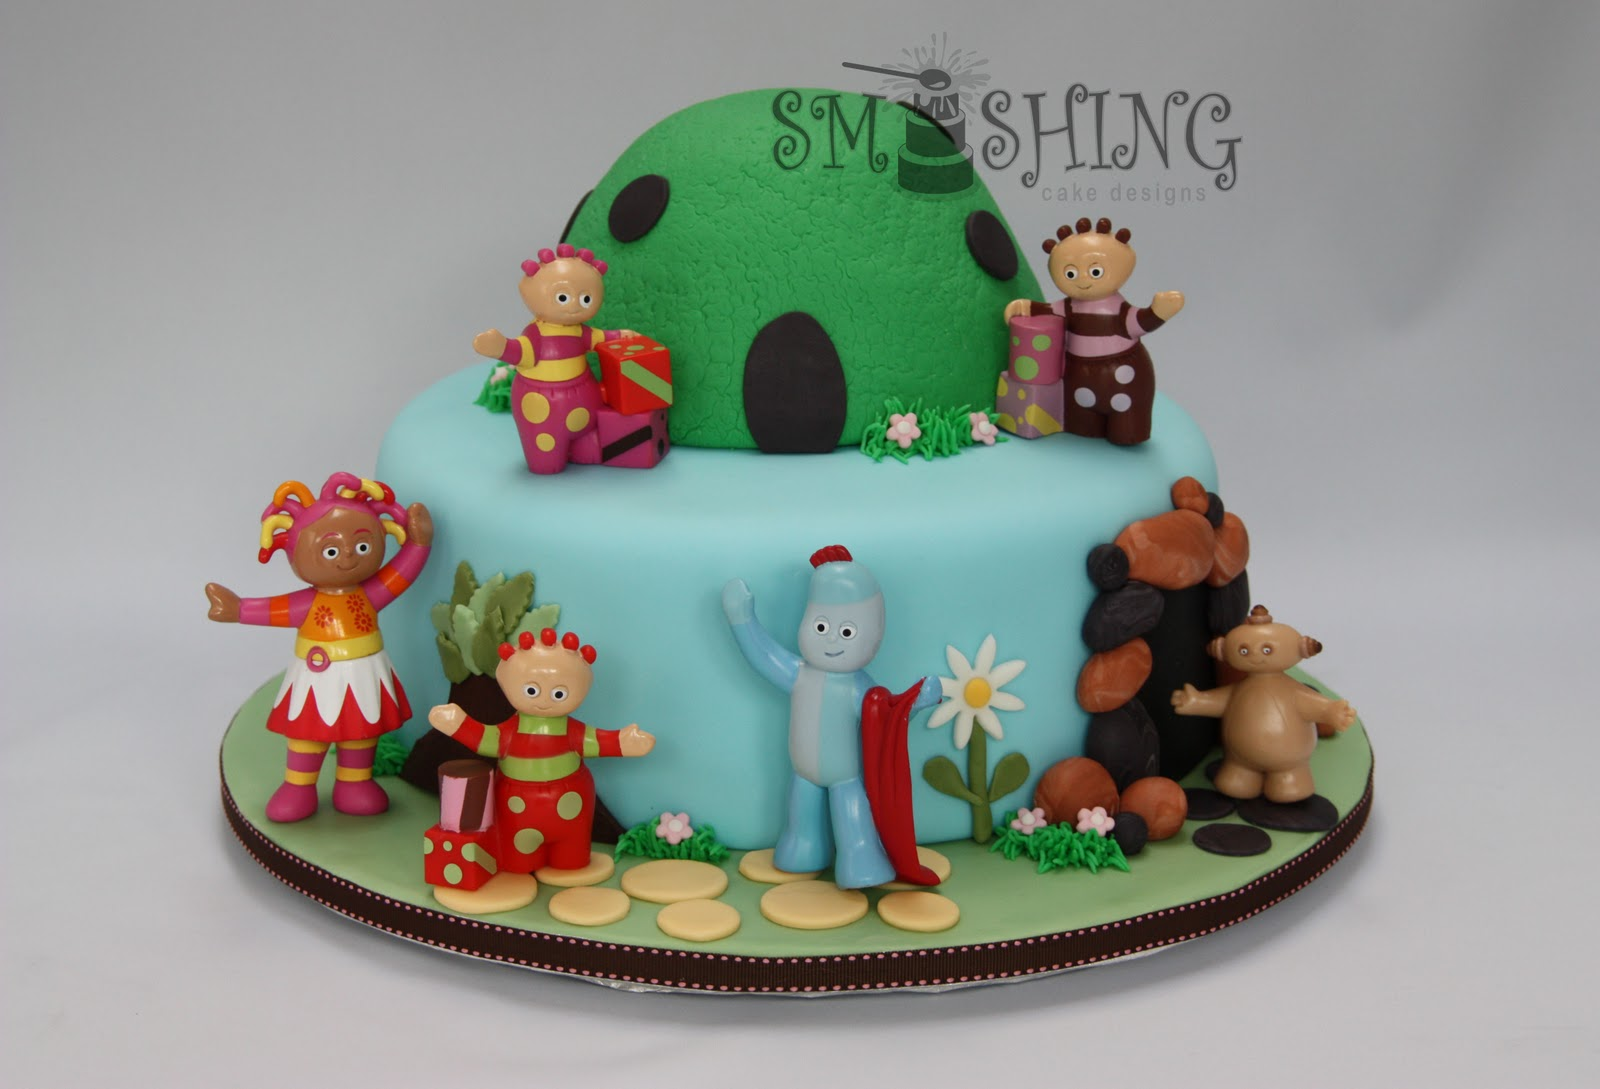 smashing cake designs same cake different version